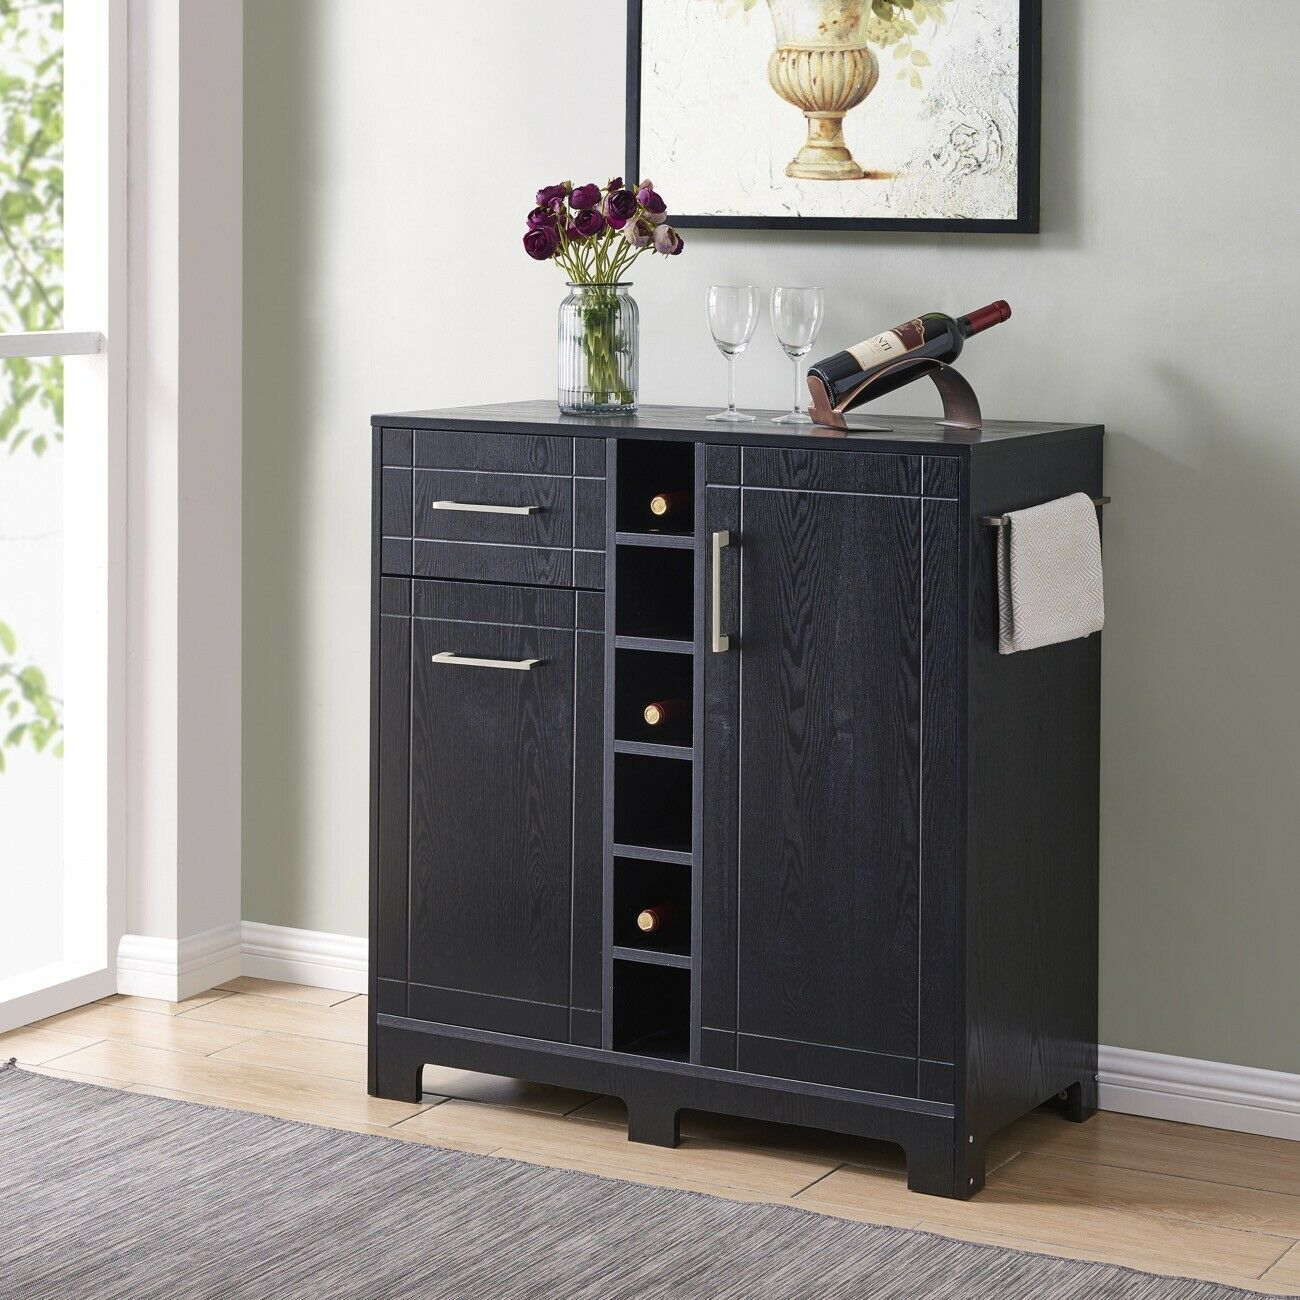 Vietti Home Bar Cabinet With Bottle Glass Storage Drawers In Black Oak Finish with regard to size 1300 X 1300